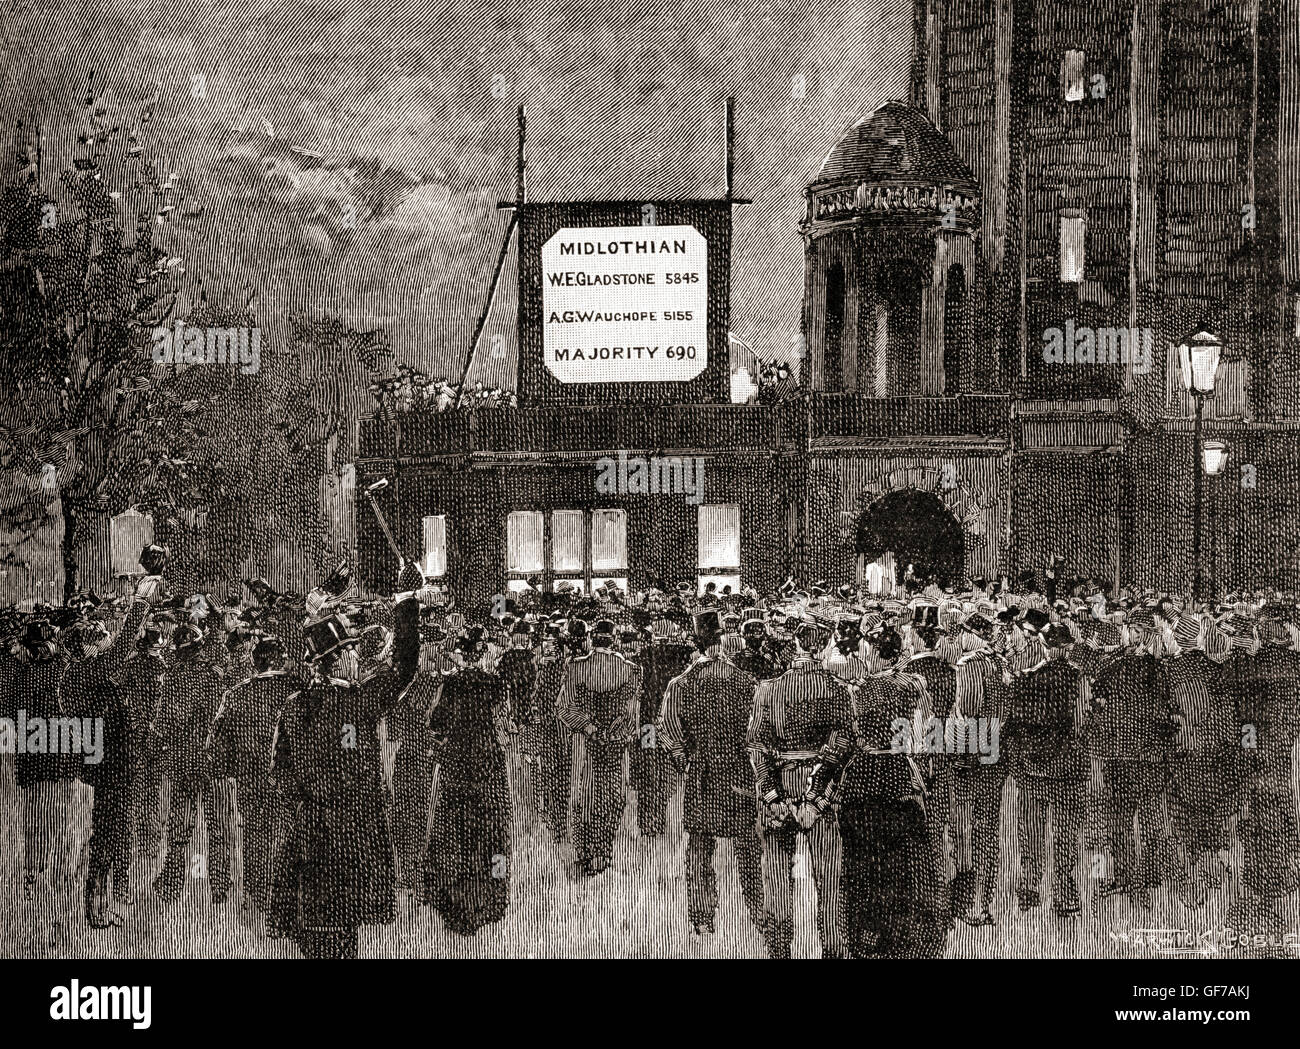 Announcing results of the General Election of 1892 at the National Liberal Club. - Stock Image